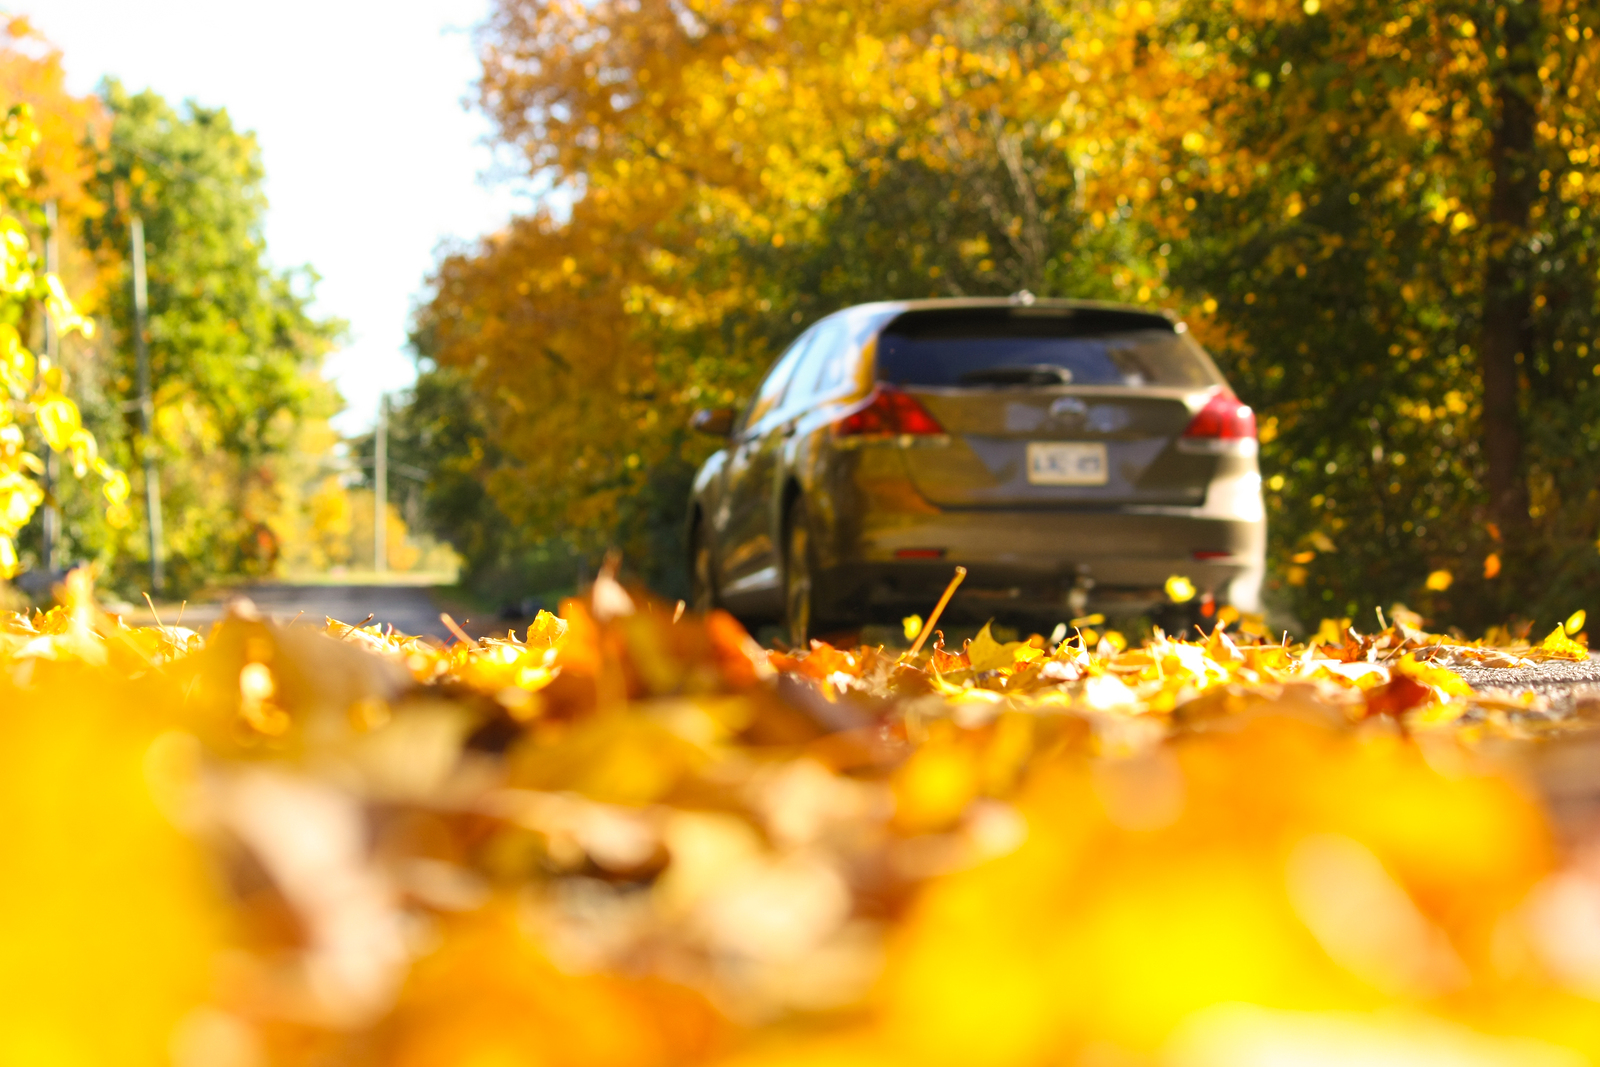 photo of a car driving through the blowing autumn leaves